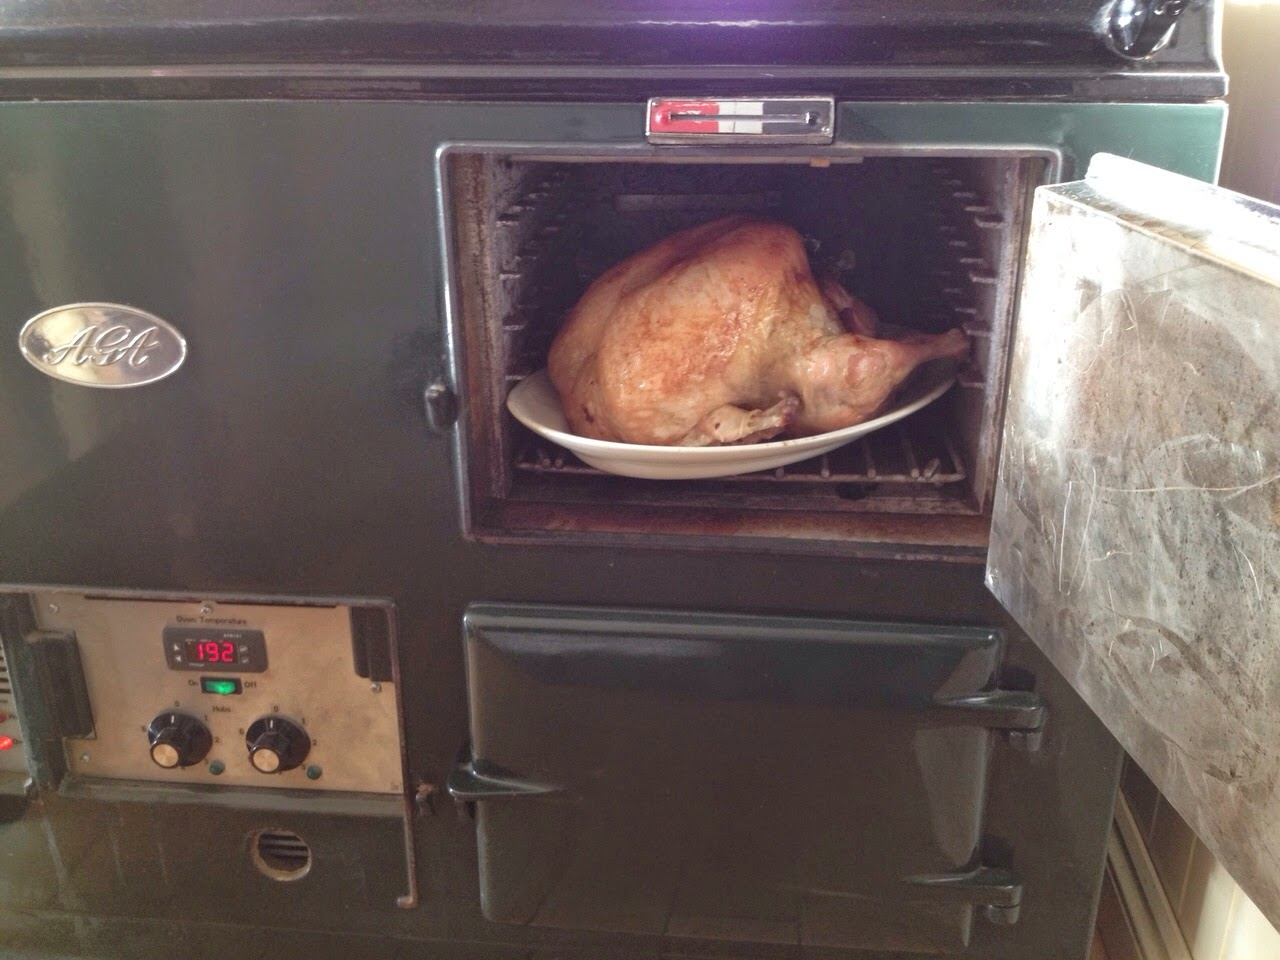 The AGA delivered exceptional results. Our turkey cooked through perfectly without drying out. We also cooked a beautiful nut roast in the bottom oven along with the scrumptious pigs in blankets below.